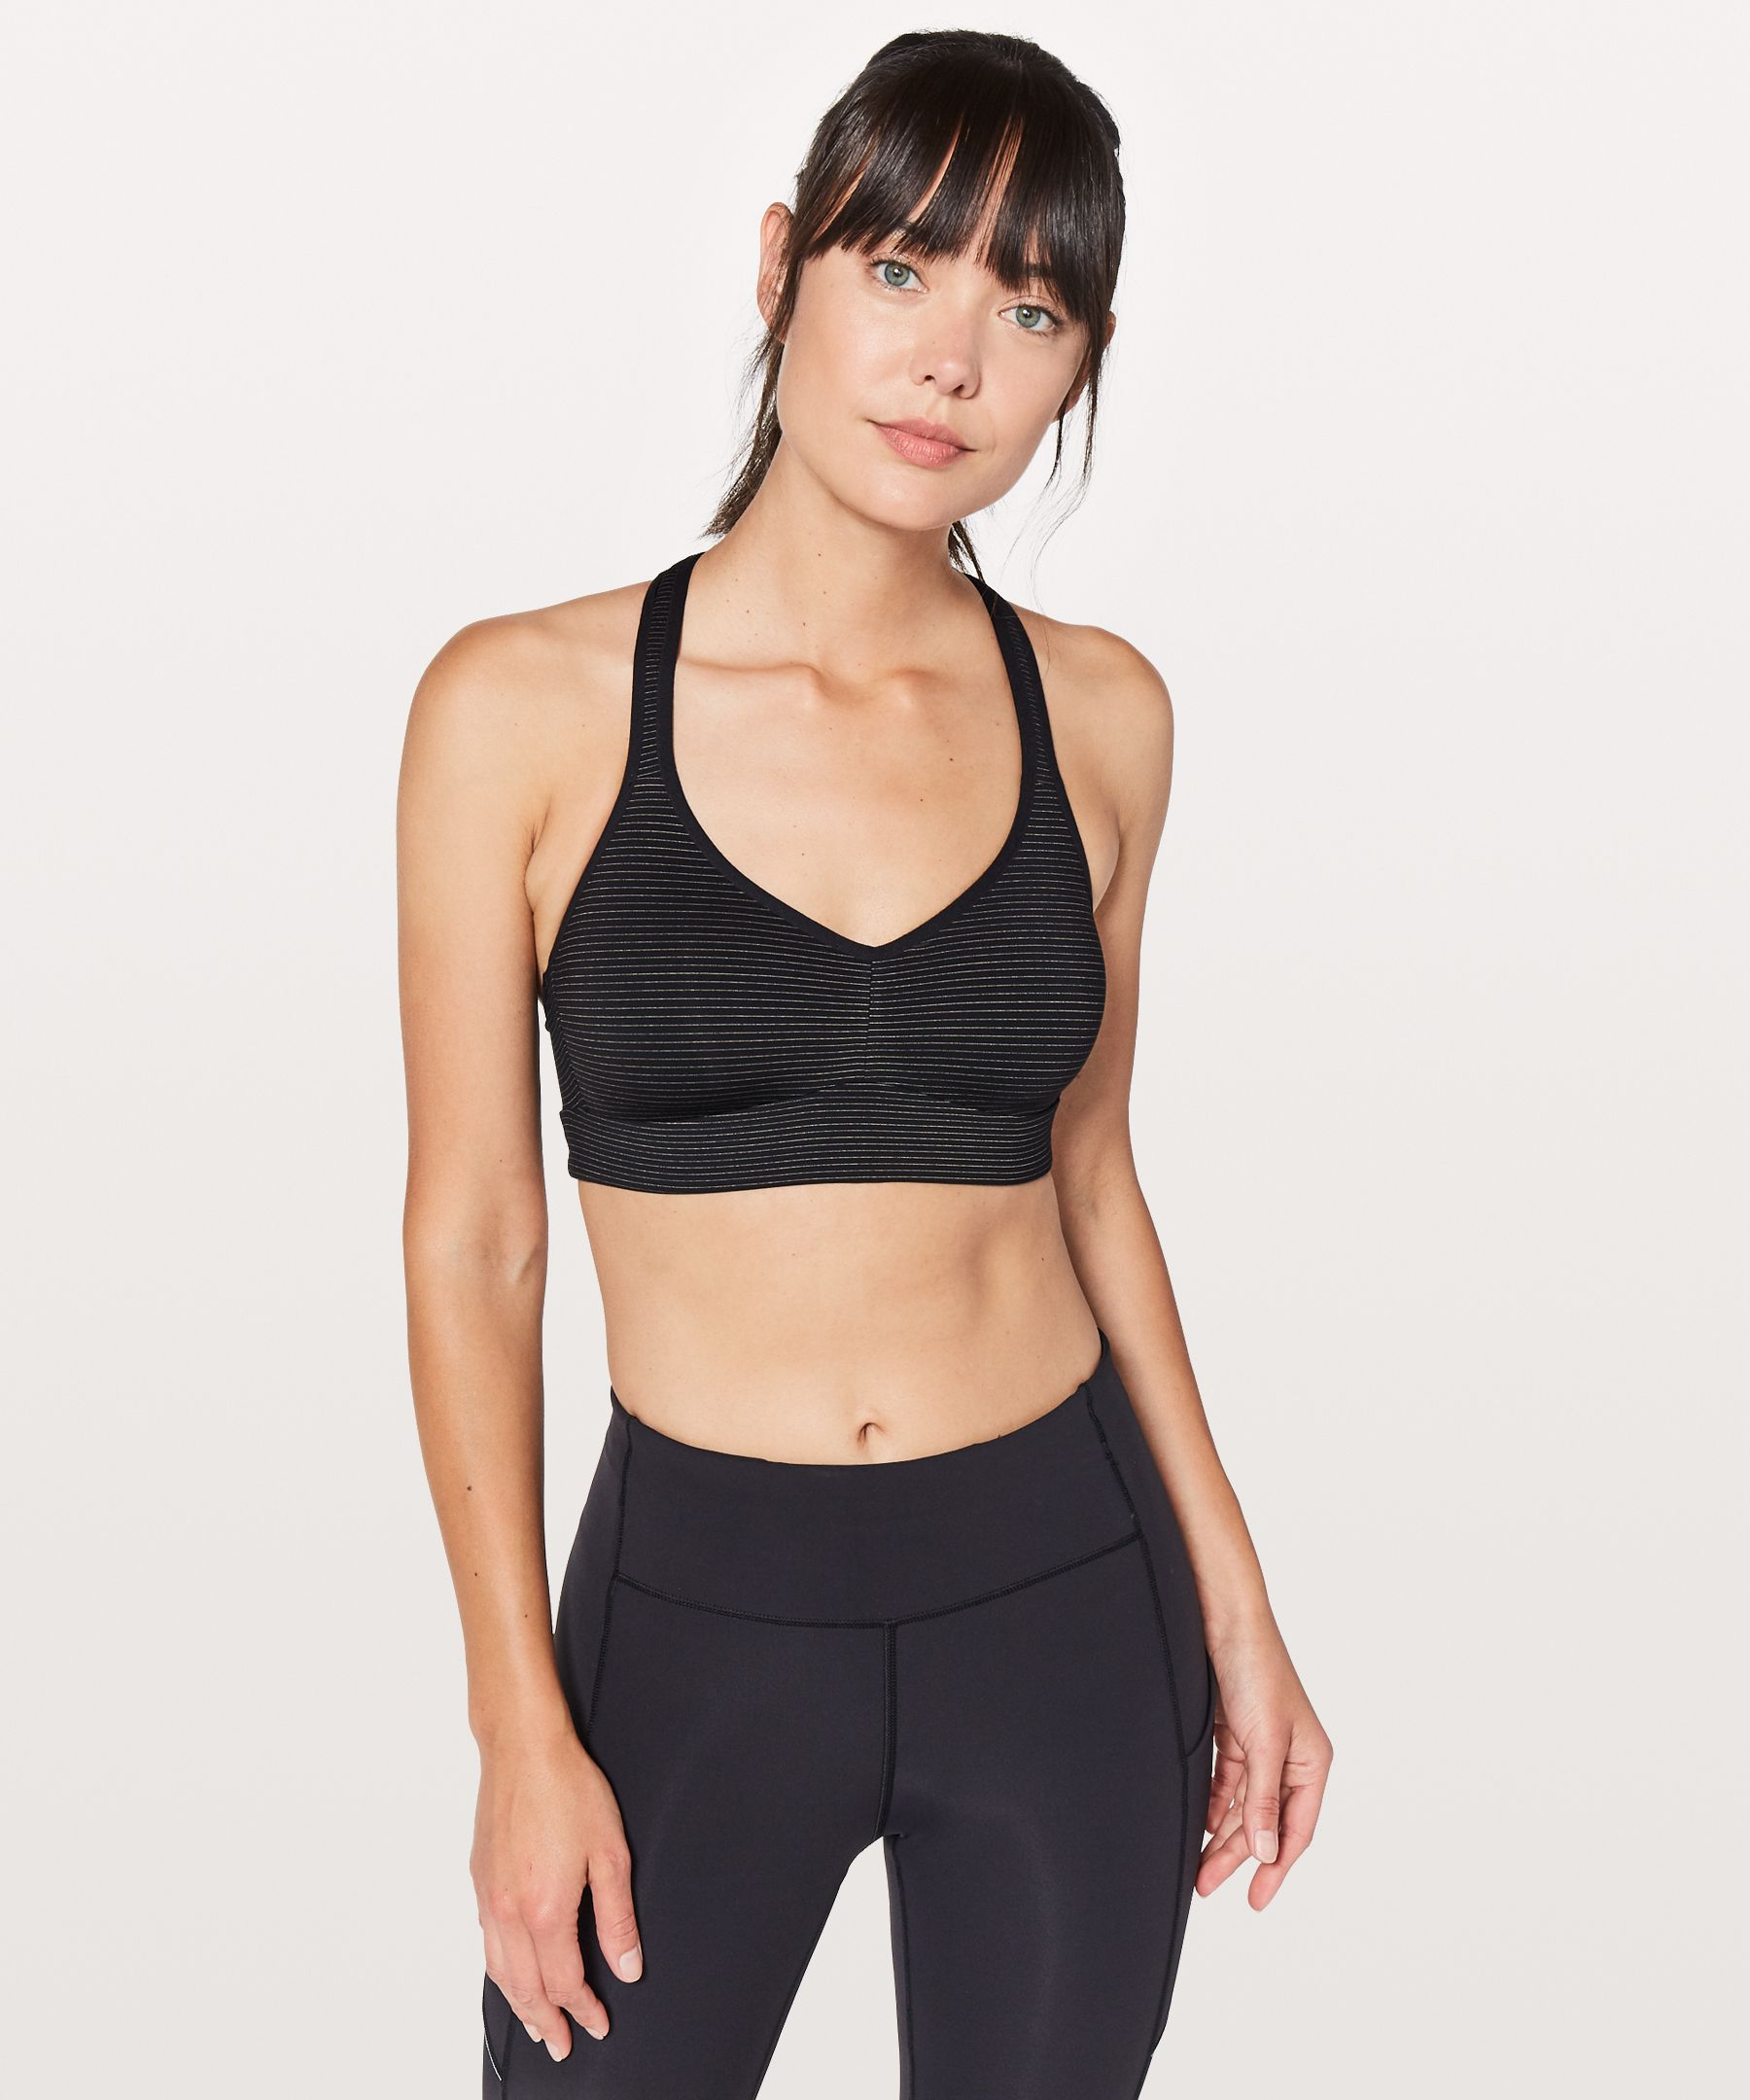 speed-up-bra-anti-stink-high-support-for-c_d-cup by lululemon